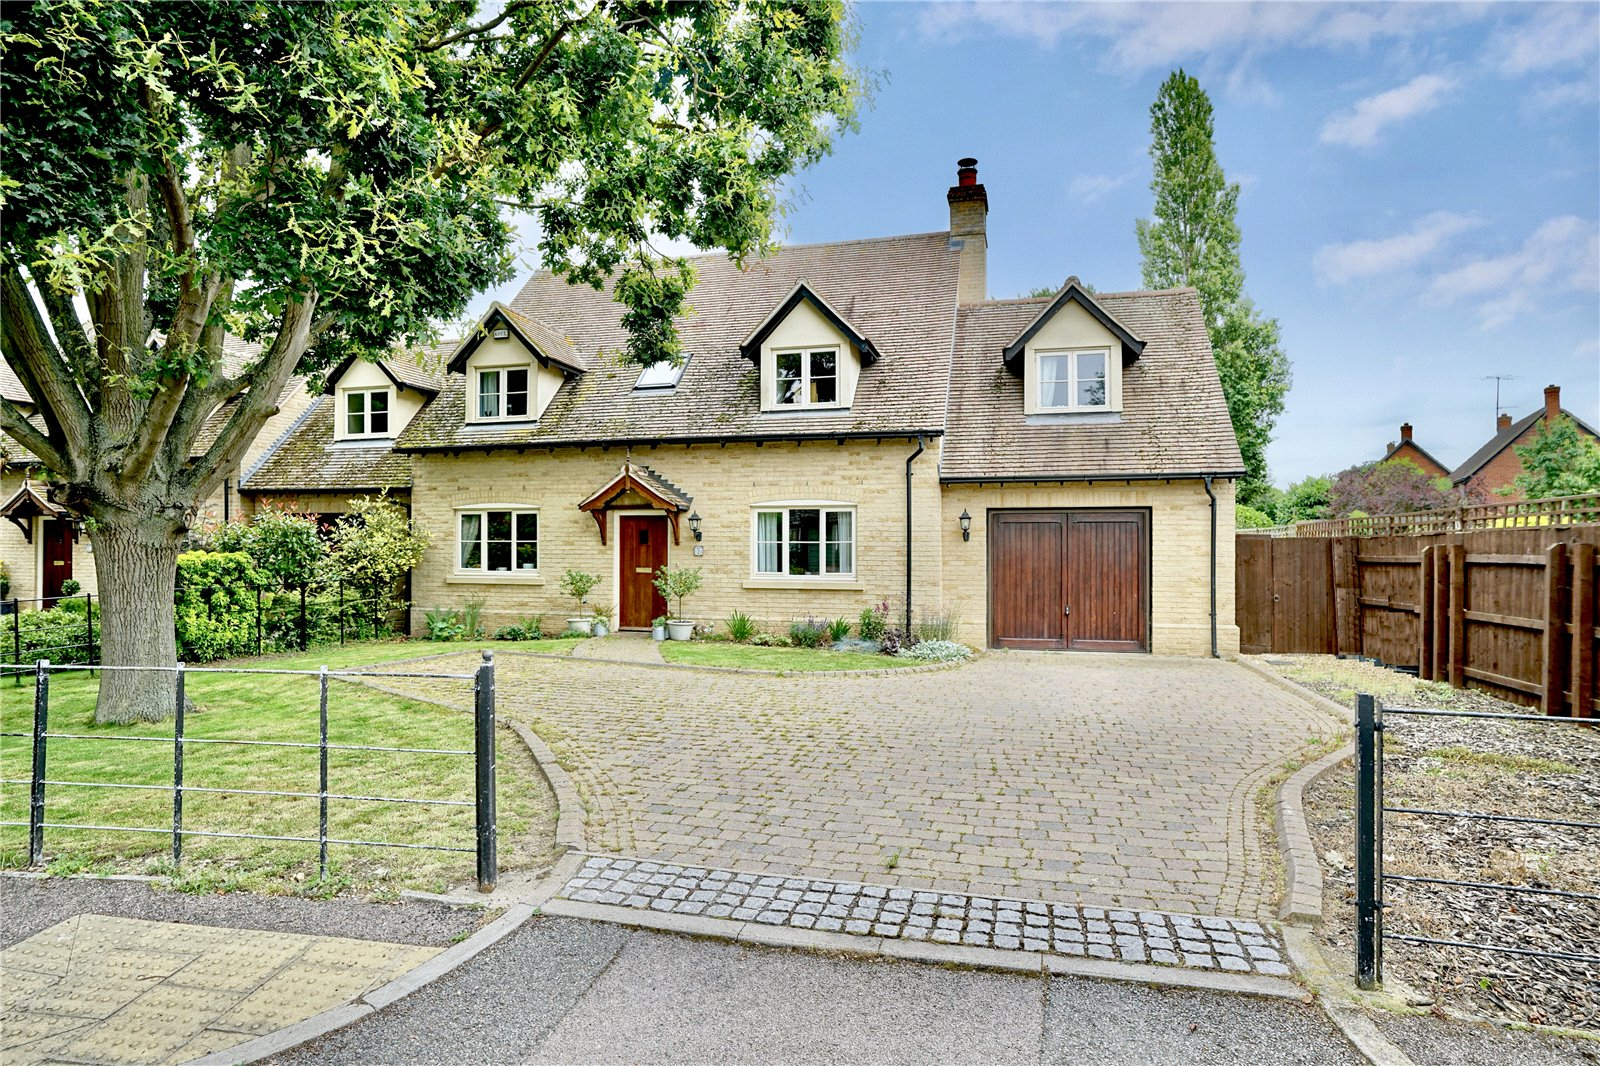 5 bed house for sale in Hilton - Property Image 1